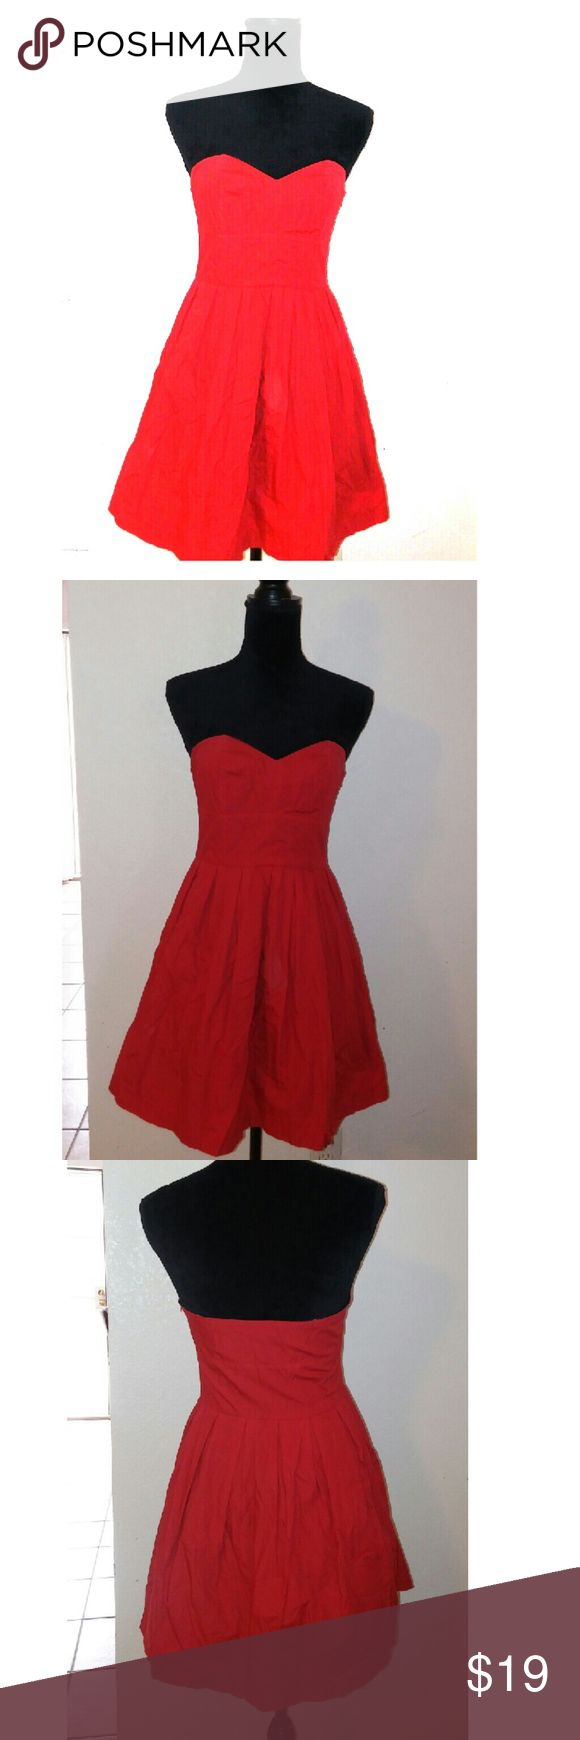 Sale* Charlotte Russe Cherry Red Strapless Dress This is sexy and classy all in one....but with a touch of innocent ;-)  Charlotte Russe Cherry Red Strapless Dress Size Medium  100% Cotton  Cherry Print lining Charlotte Russe Dresses Strapless